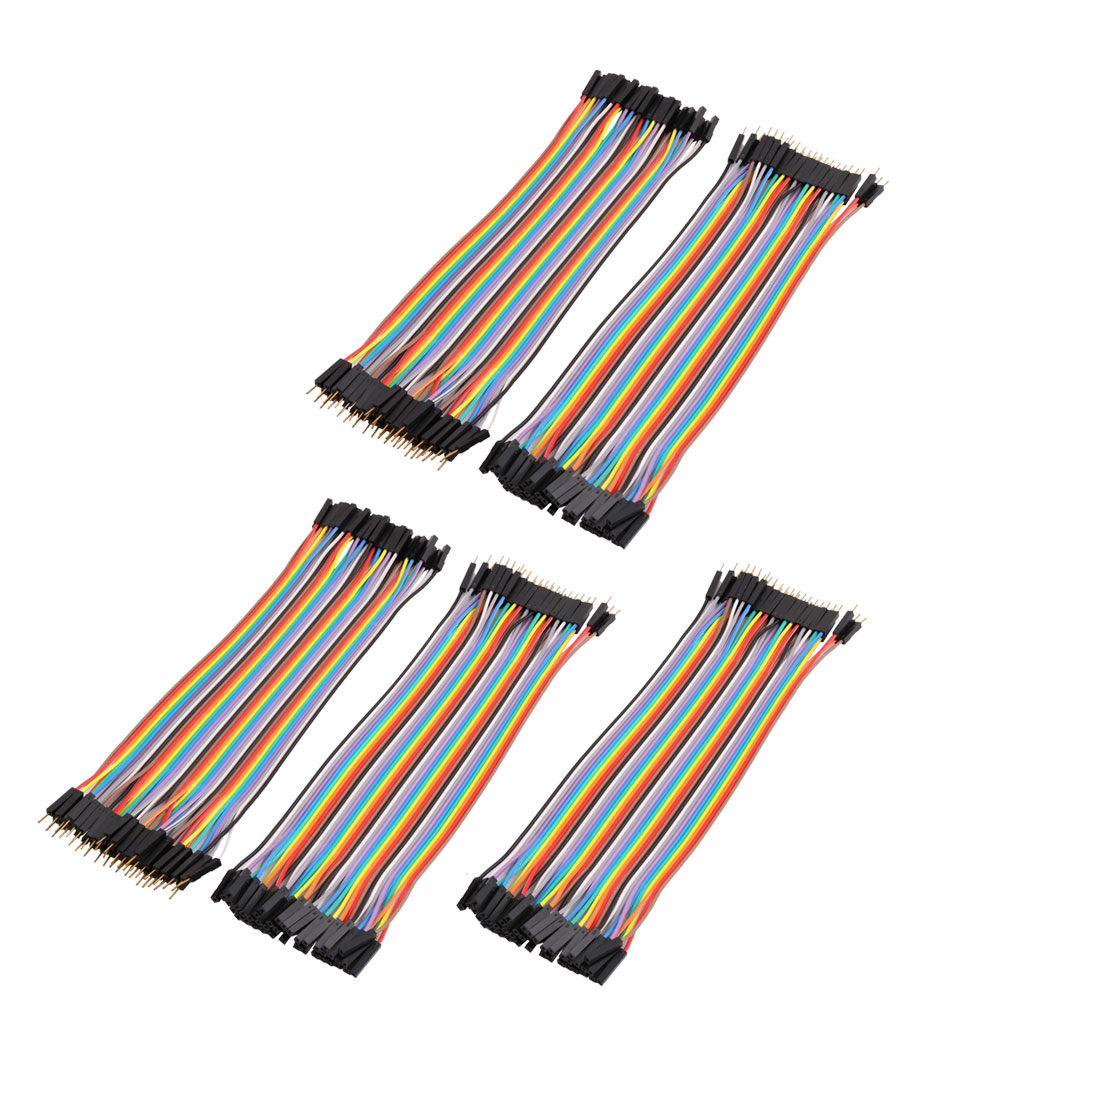 5Pcs Male to Female 40P Jumper Wires Ribbon Cables Pi Pic Breadboard DIY 20cm